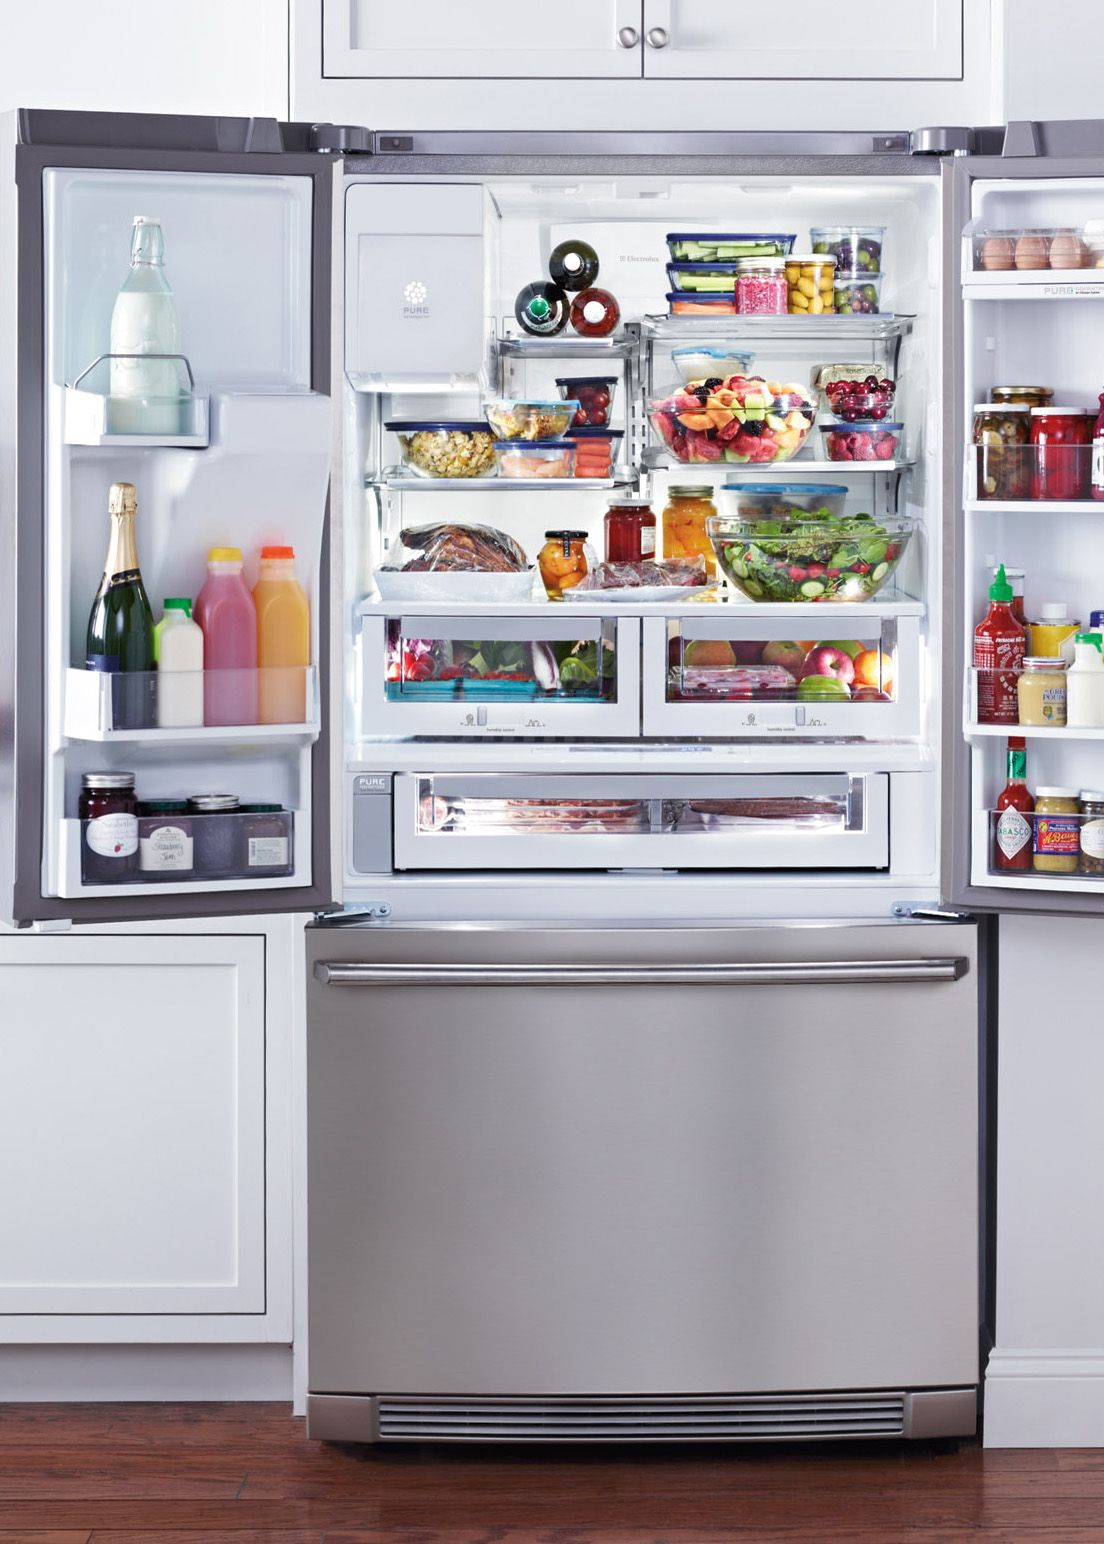 Electrolux refrigerators keep everything from fine cheese to fresh veggies stored at just the right temperature. Enter the future with wave touch controls that change over a dozen settings.